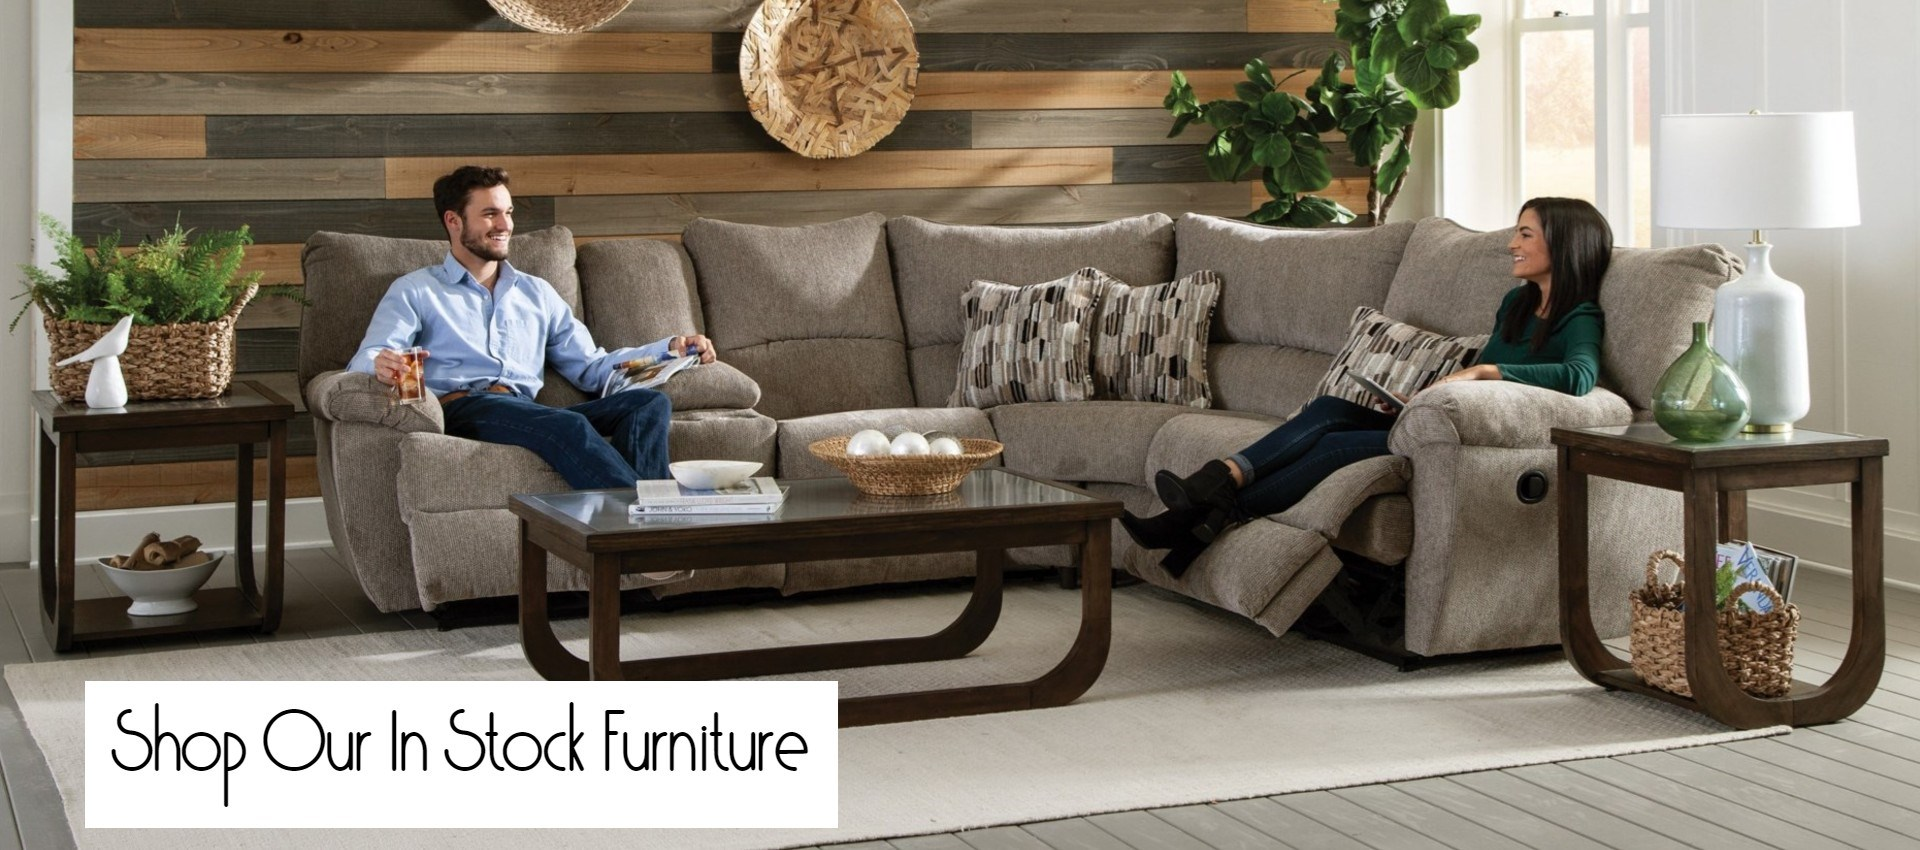 shop our in stock furniture